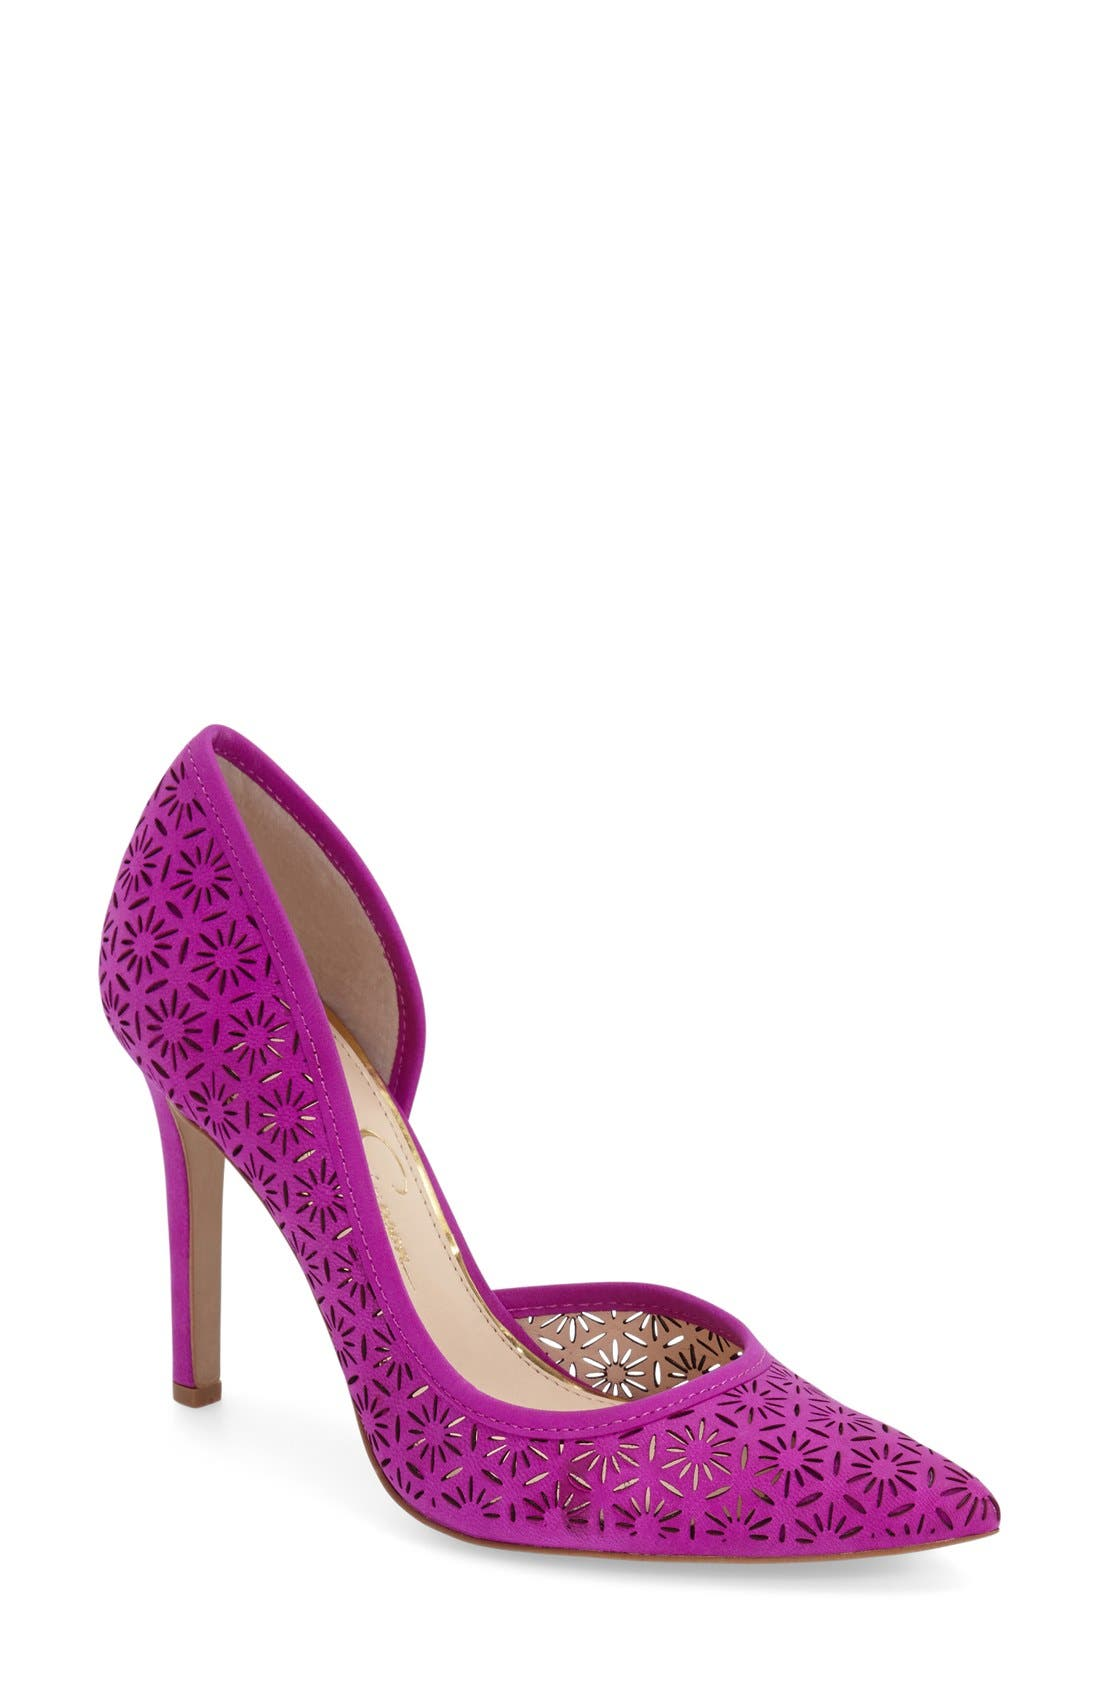 Alternate Image 1 Selected - Jessica Simpson 'Claudette' Half d'Orsay Pump